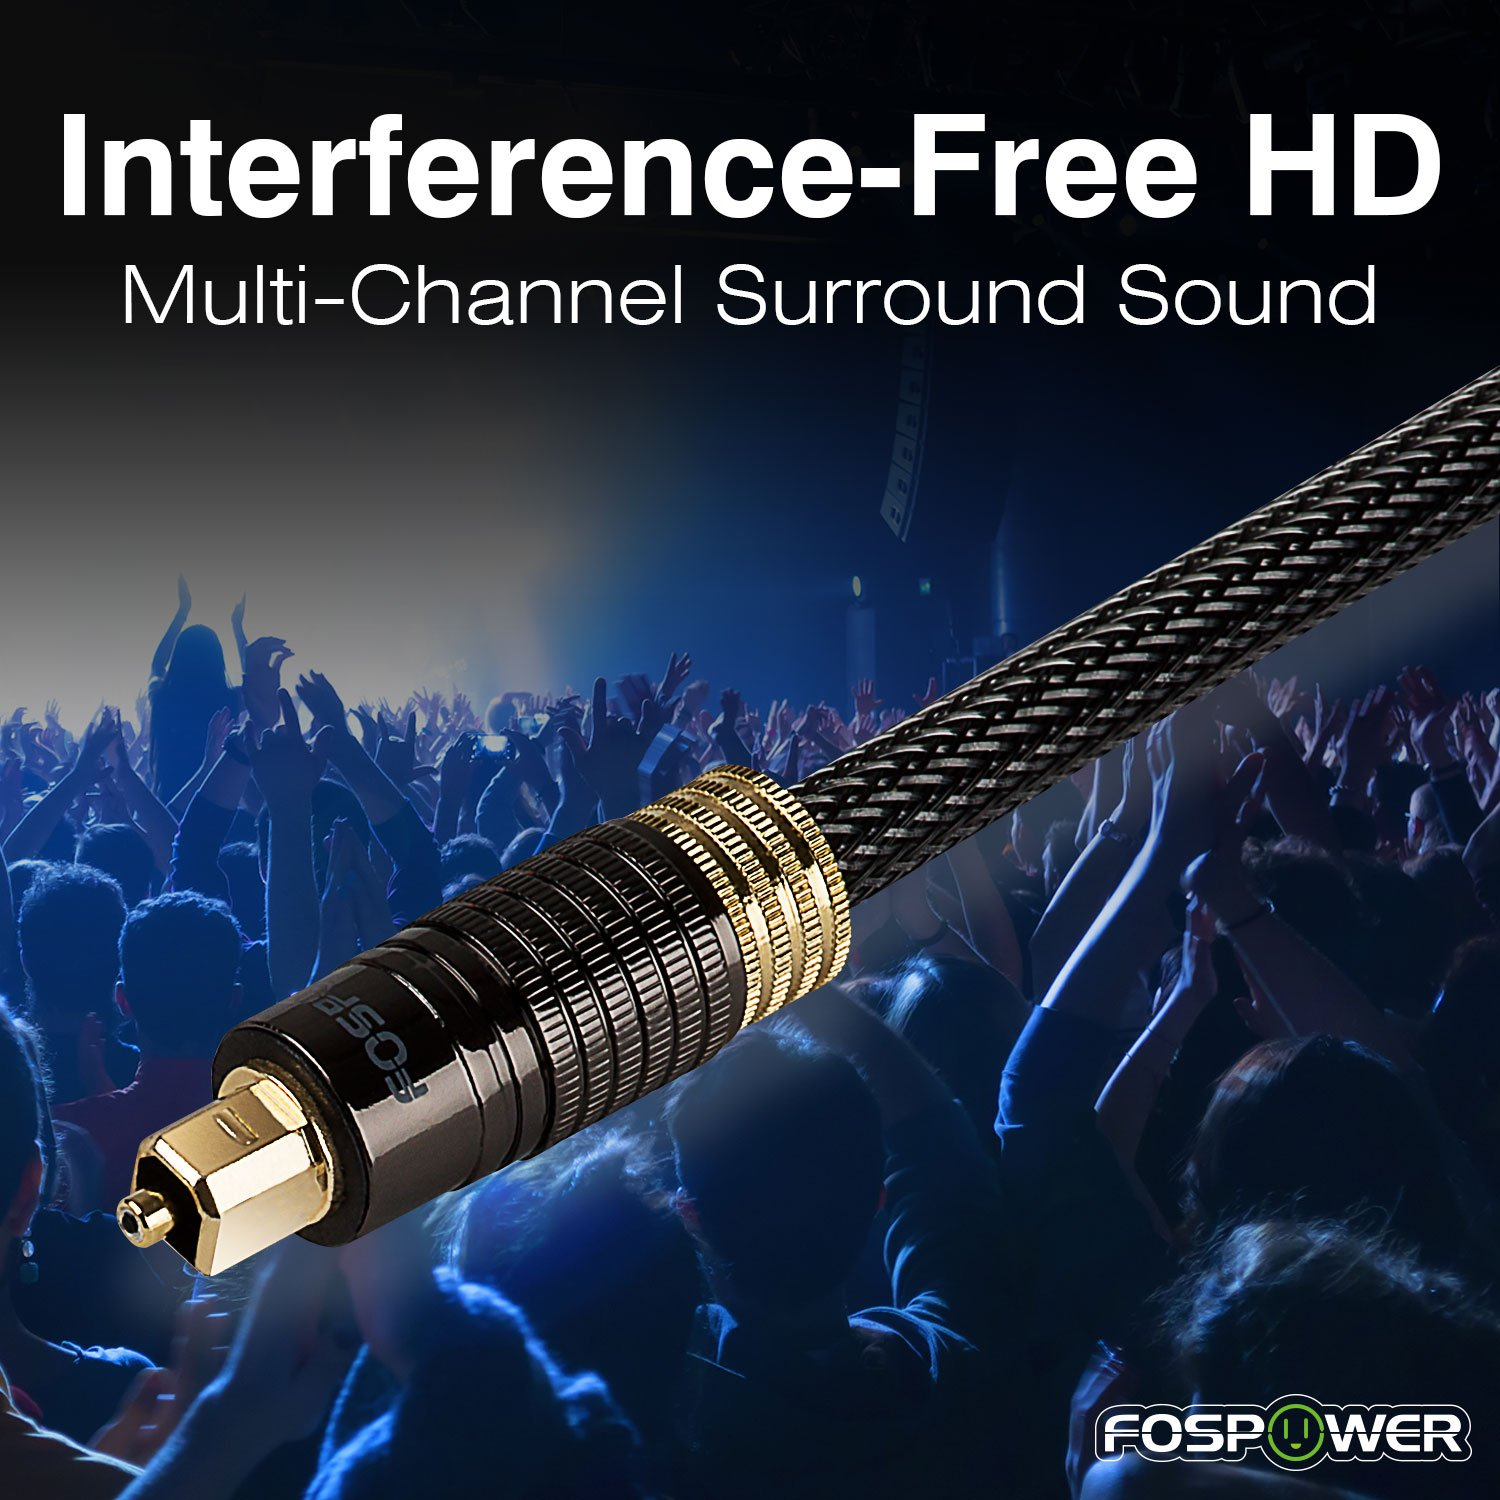 FosPower (25 Feet) 24K Gold Plated Toslink Digital Optical Audio Cable (S/PDIF) - [Zero RFI & EMI Interference] Metal Connectors & Ultra Durable Nylon Braided Jacket by FosPower (Image #3)